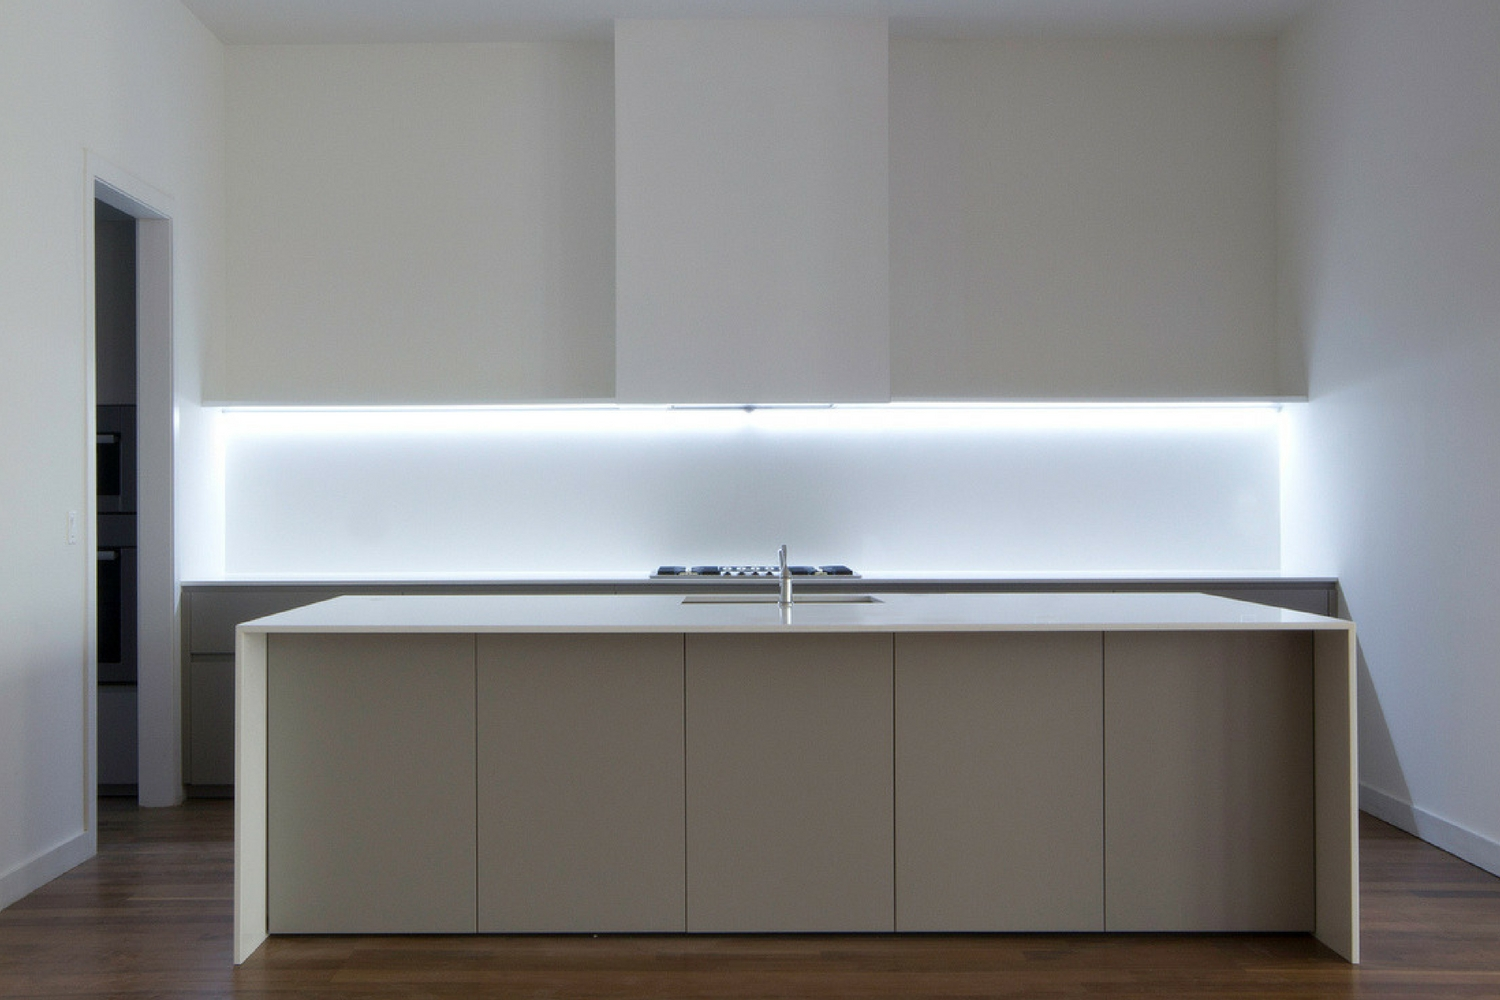 I miei 5 segreti per illuminare la cucina | Idealight.it